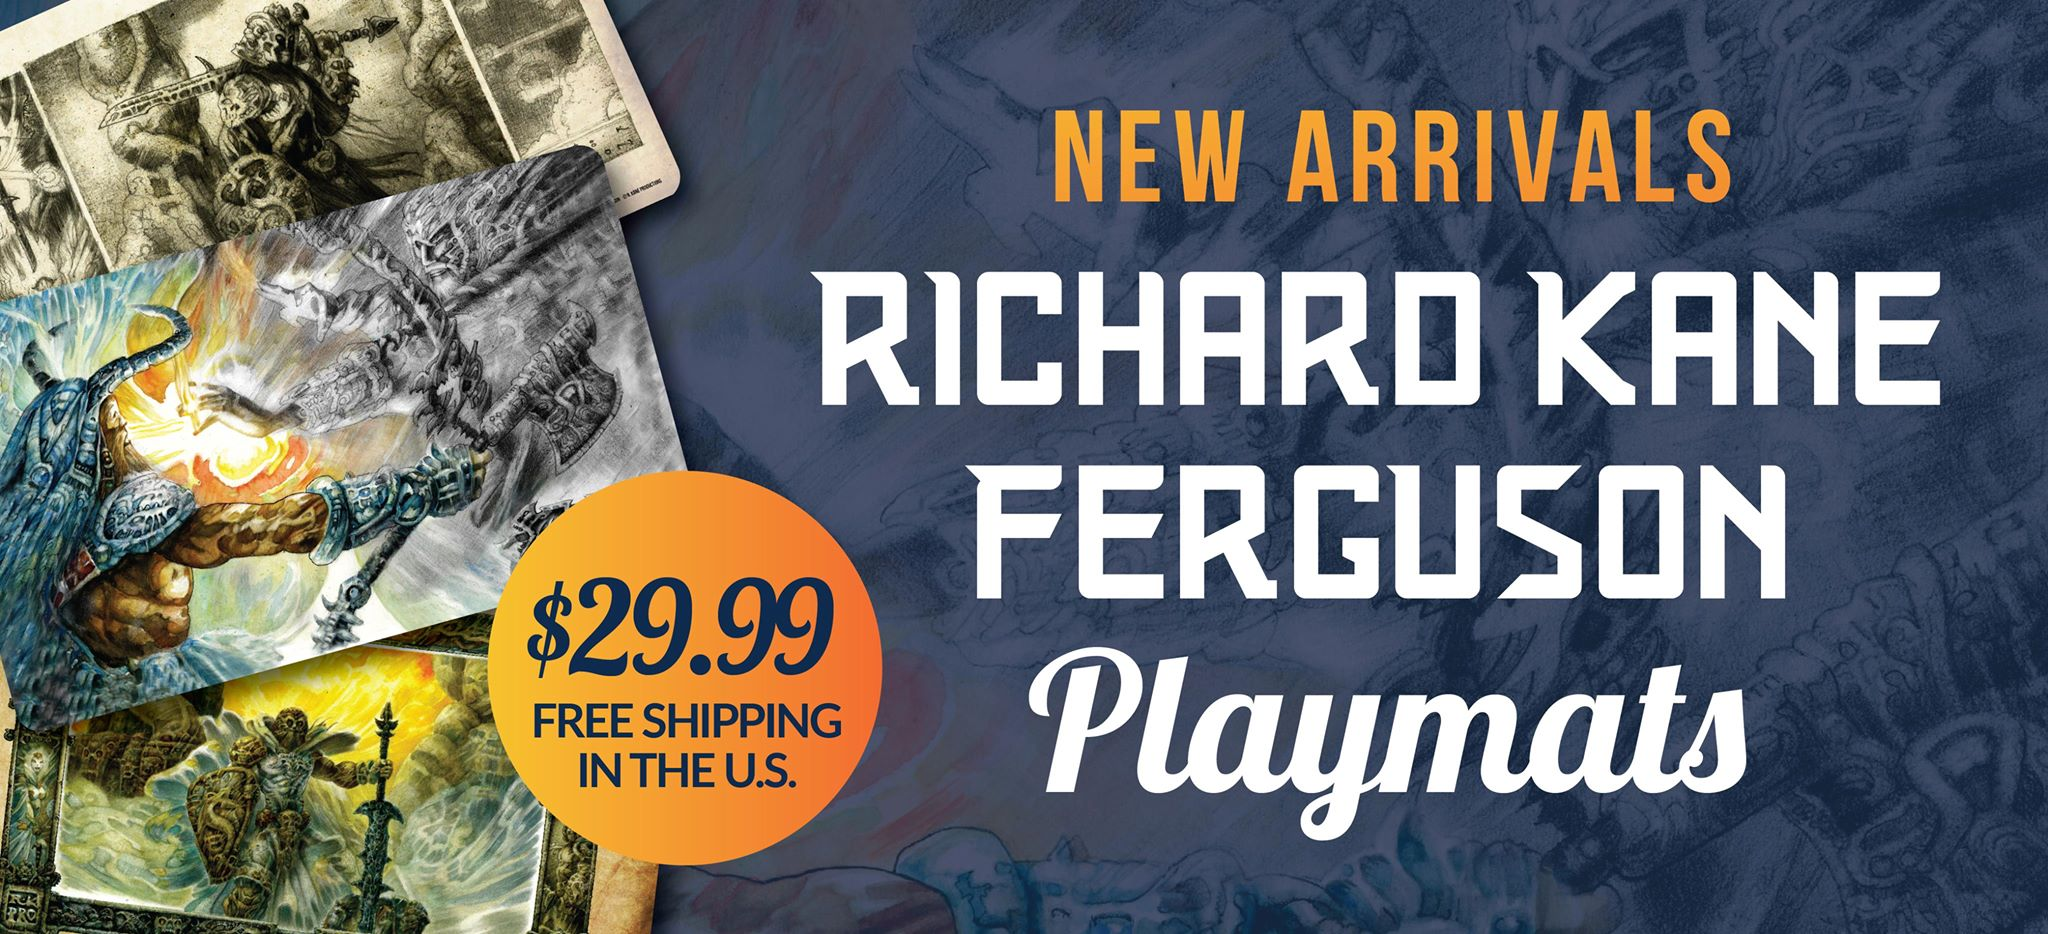 Richard Kane Ferguson Playmats